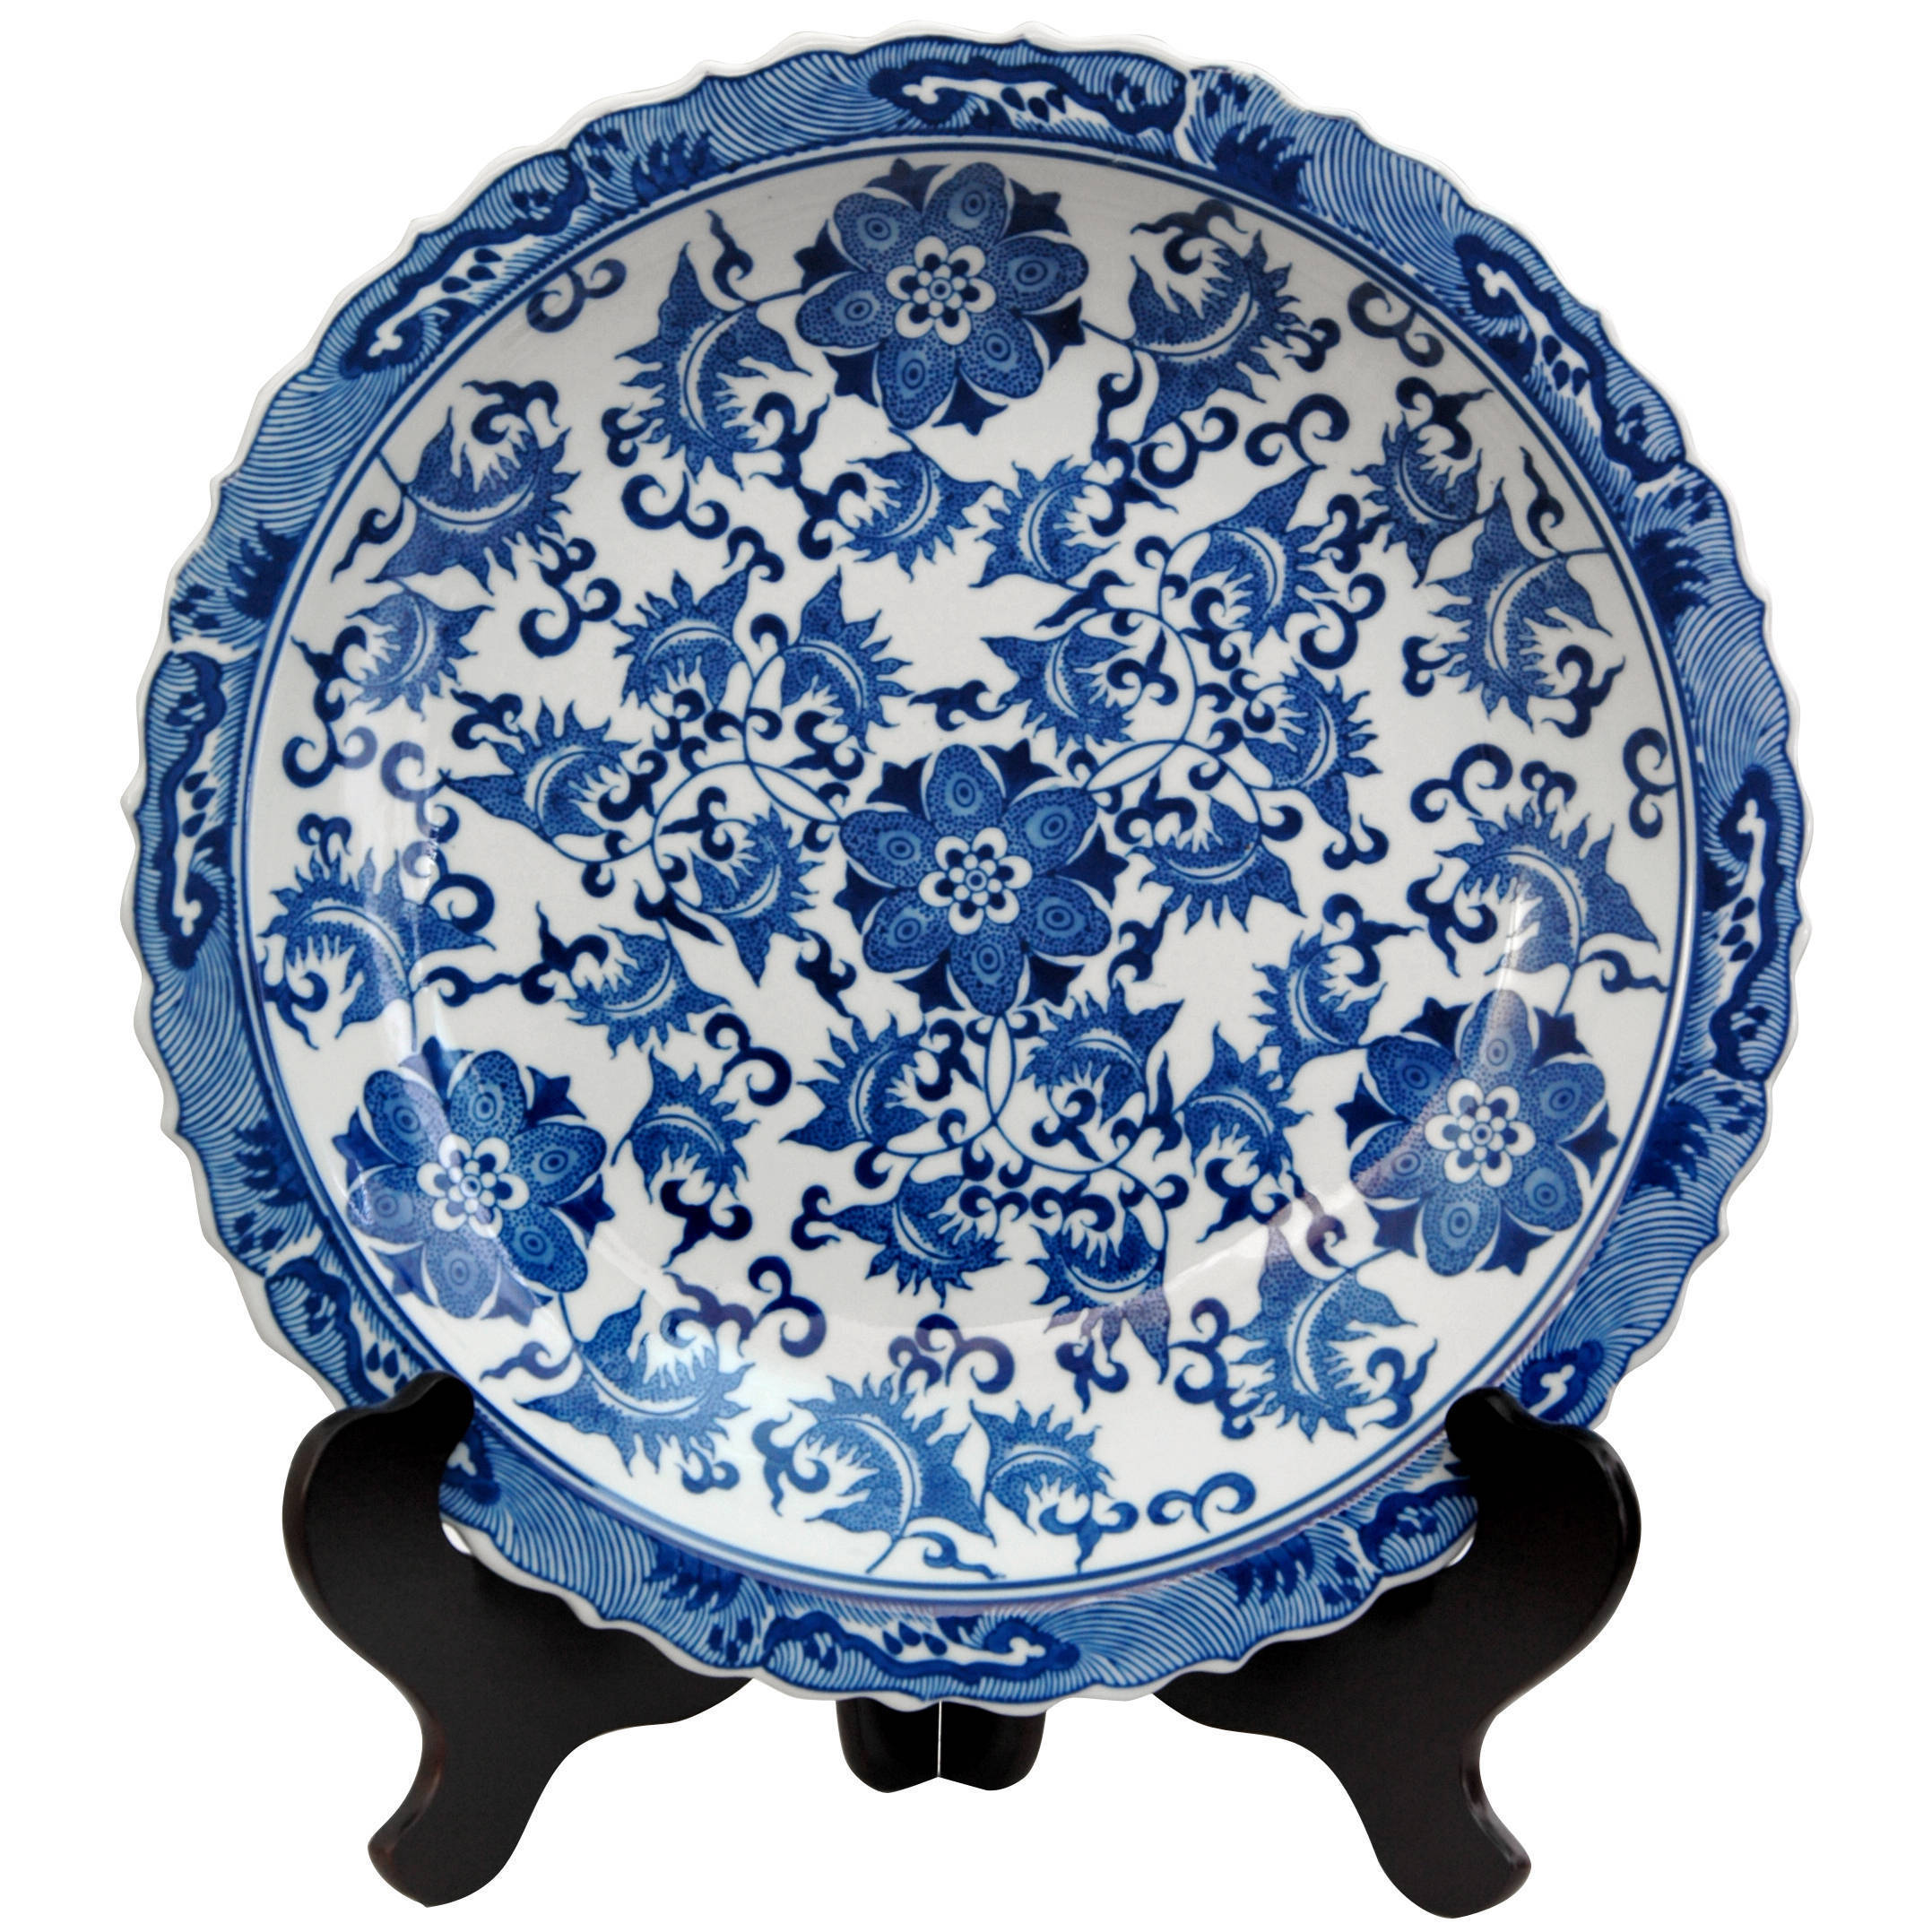 Handmade Porcelain 14-inch Blue and White Floral Plate (China) - Free Shipping Today - Overstock - 13421000  sc 1 st  Overstock & Handmade Porcelain 14-inch Blue and White Floral Plate (China ...